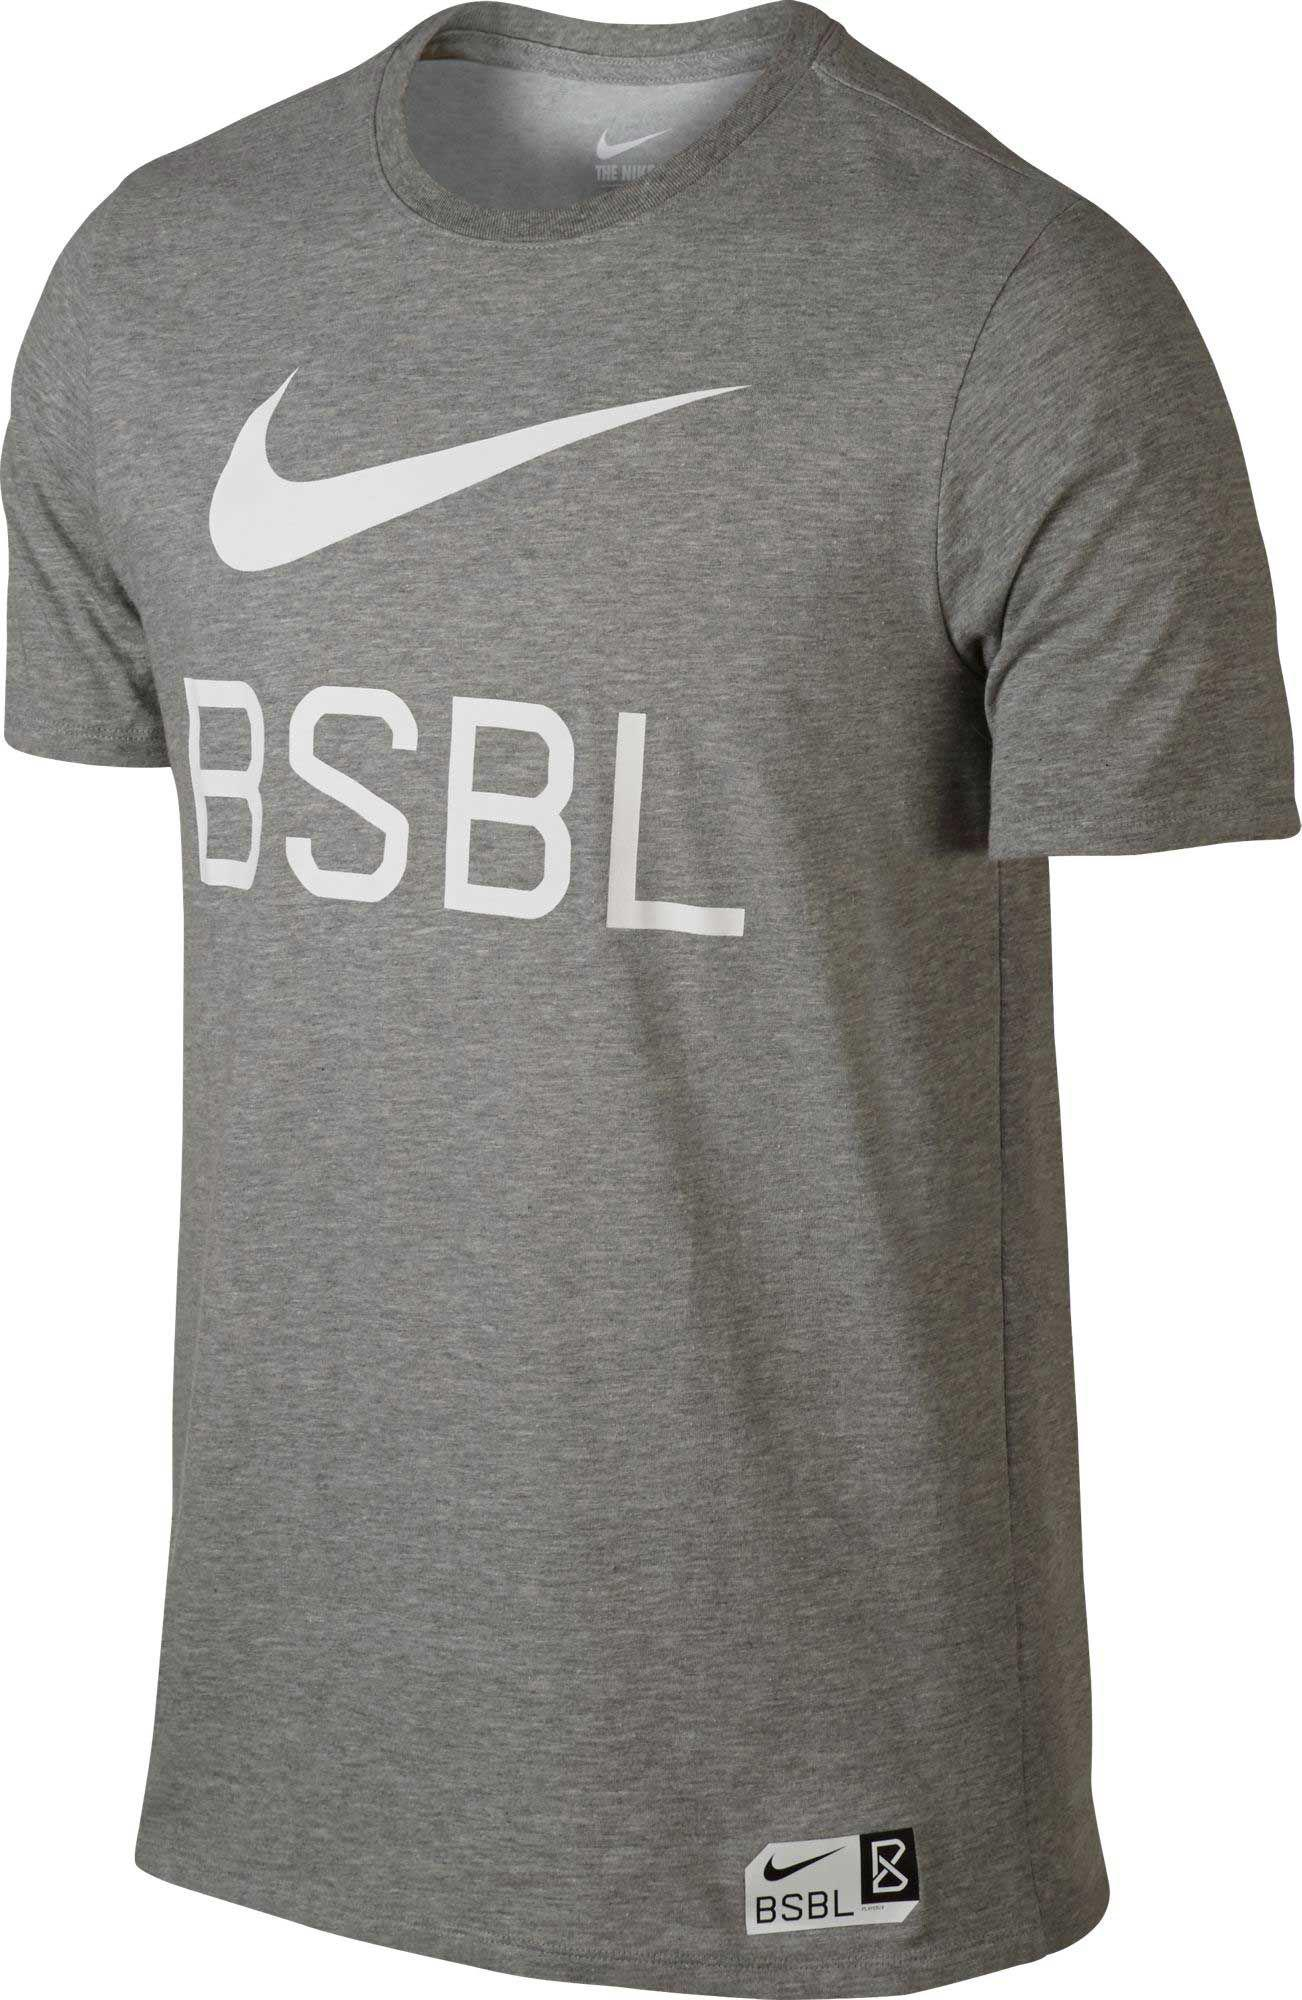 5e3bae7af344 Lyst - Nike Dry Swoosh 1.6 Graphic Baseball T-shirt in Gray for Men